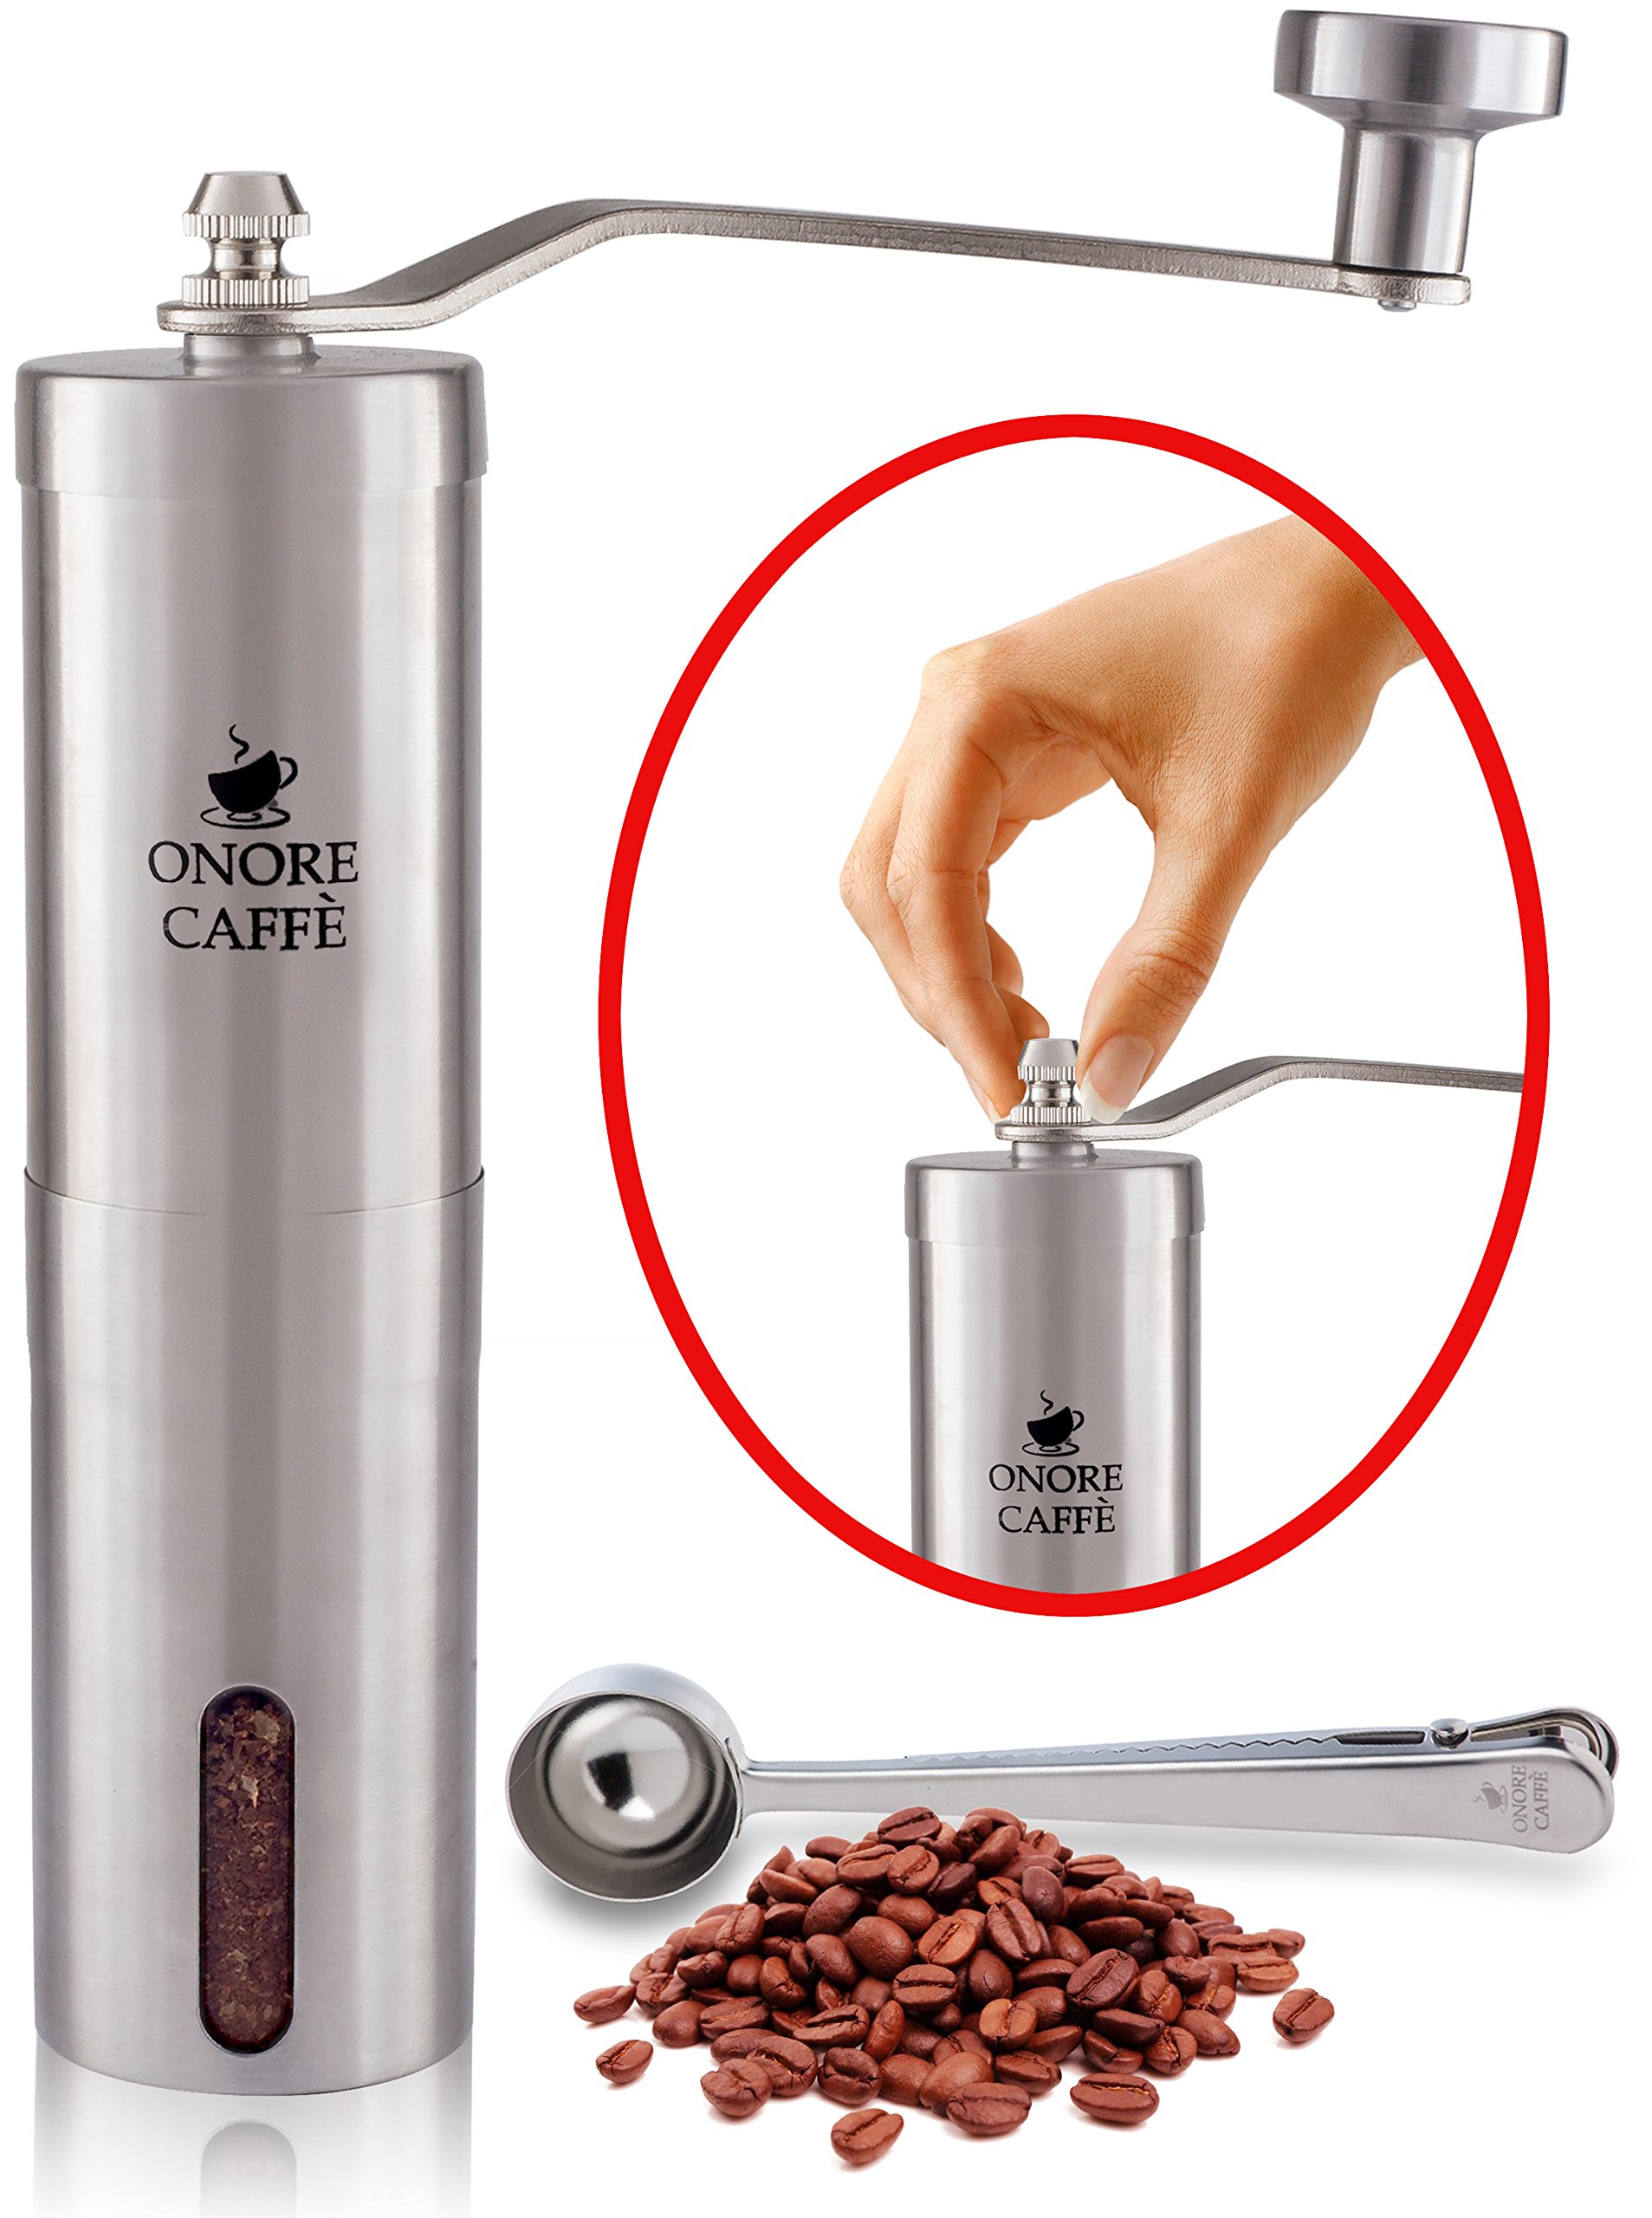 Heavy Duty - Premium Quality Stainless Steel Manual Coffee Grinder - Portable Conical Burr Mill for Precision Brewing + Unique Screw Patent + Scoop + Brush + E-book :: French Press- Espresso - Turkish